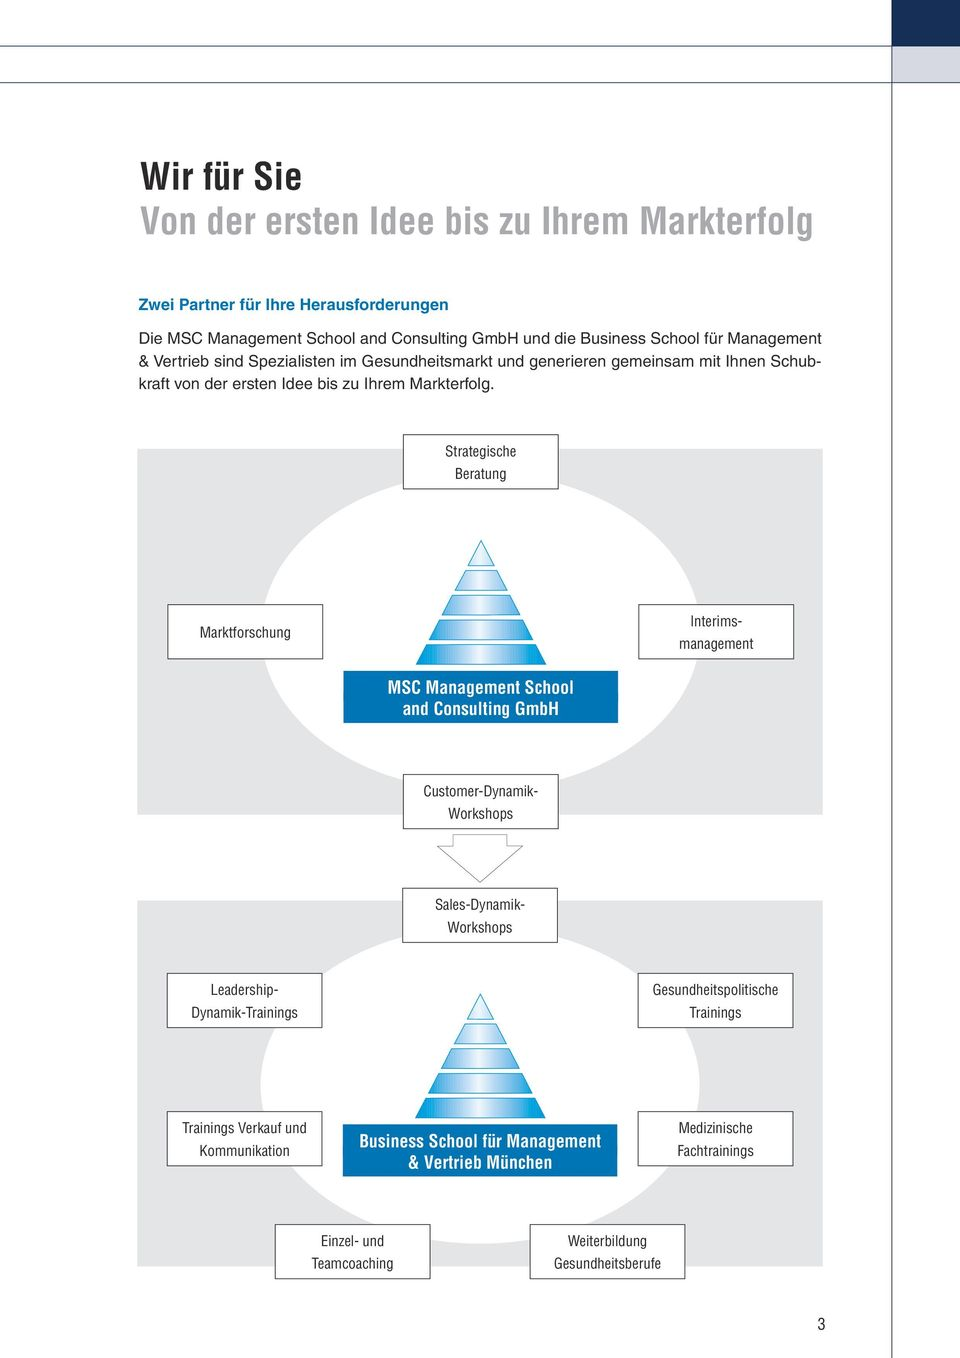 Strategische Beratung Marktforschung Interimsmanagement MSC Management School and Consulting GmbH Customer-Dynamik- Workshops Sales-Dynamik- Workshops Leadership-